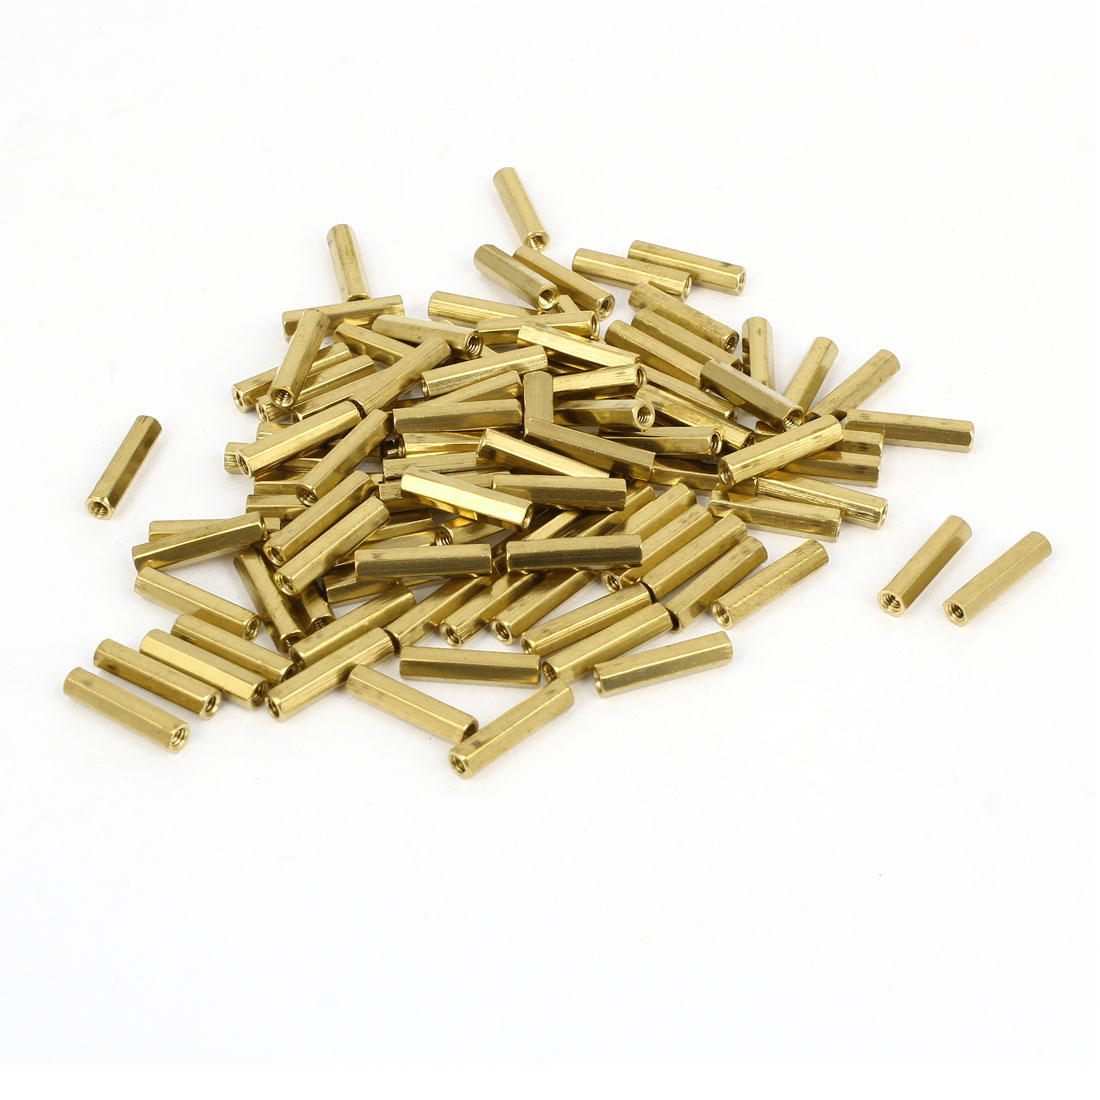 100 Pcs M2 x 13mm Gold Tone Dual Ends CCTV Camera Standoff Hexagonal Nut Spacer